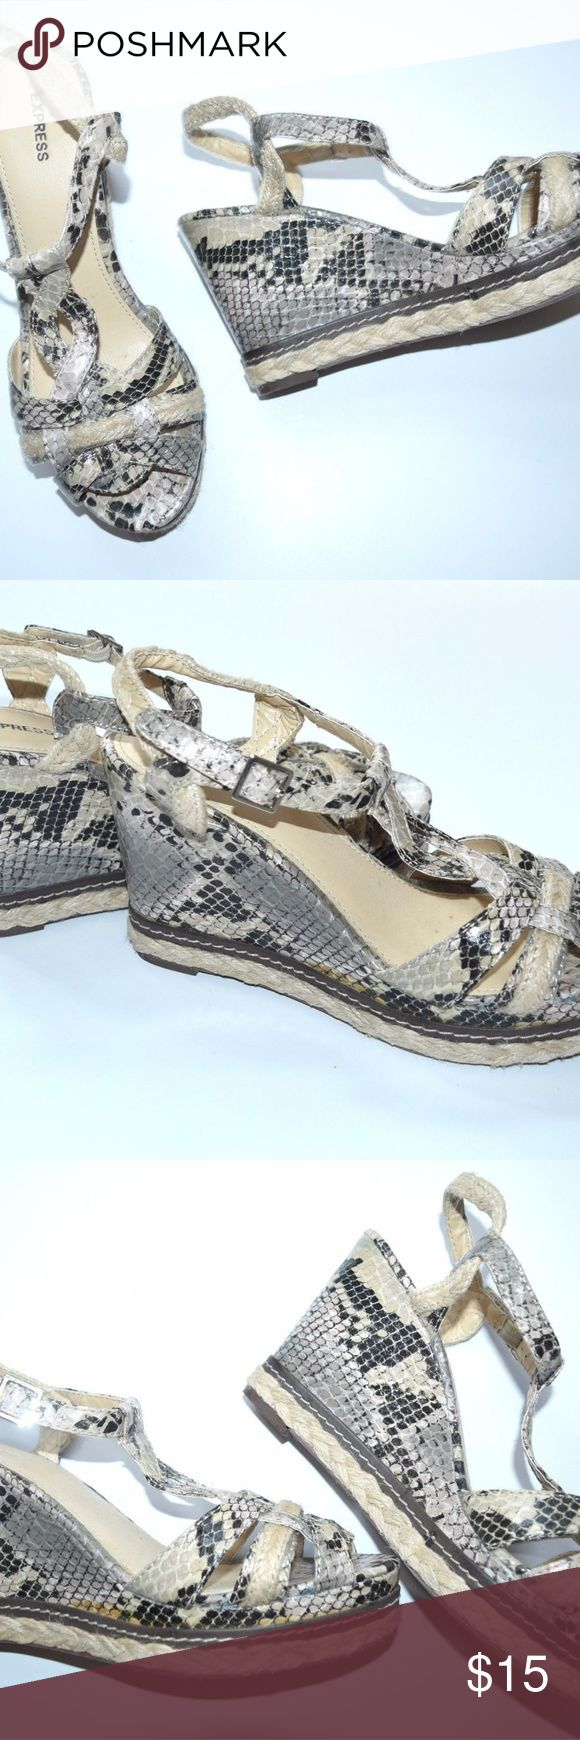 Express Womens 7 Wedge Snakeskin Sandals Shoes Express Womens Wedge Snakeskin Sandals Shoes Espadrille  Sz 7  Condition: VGUC, a little glue showing on the seam in a few places, just cosmetic, and not really noticeable unless looking close, see closeups.  Express Shoes Espadrilles